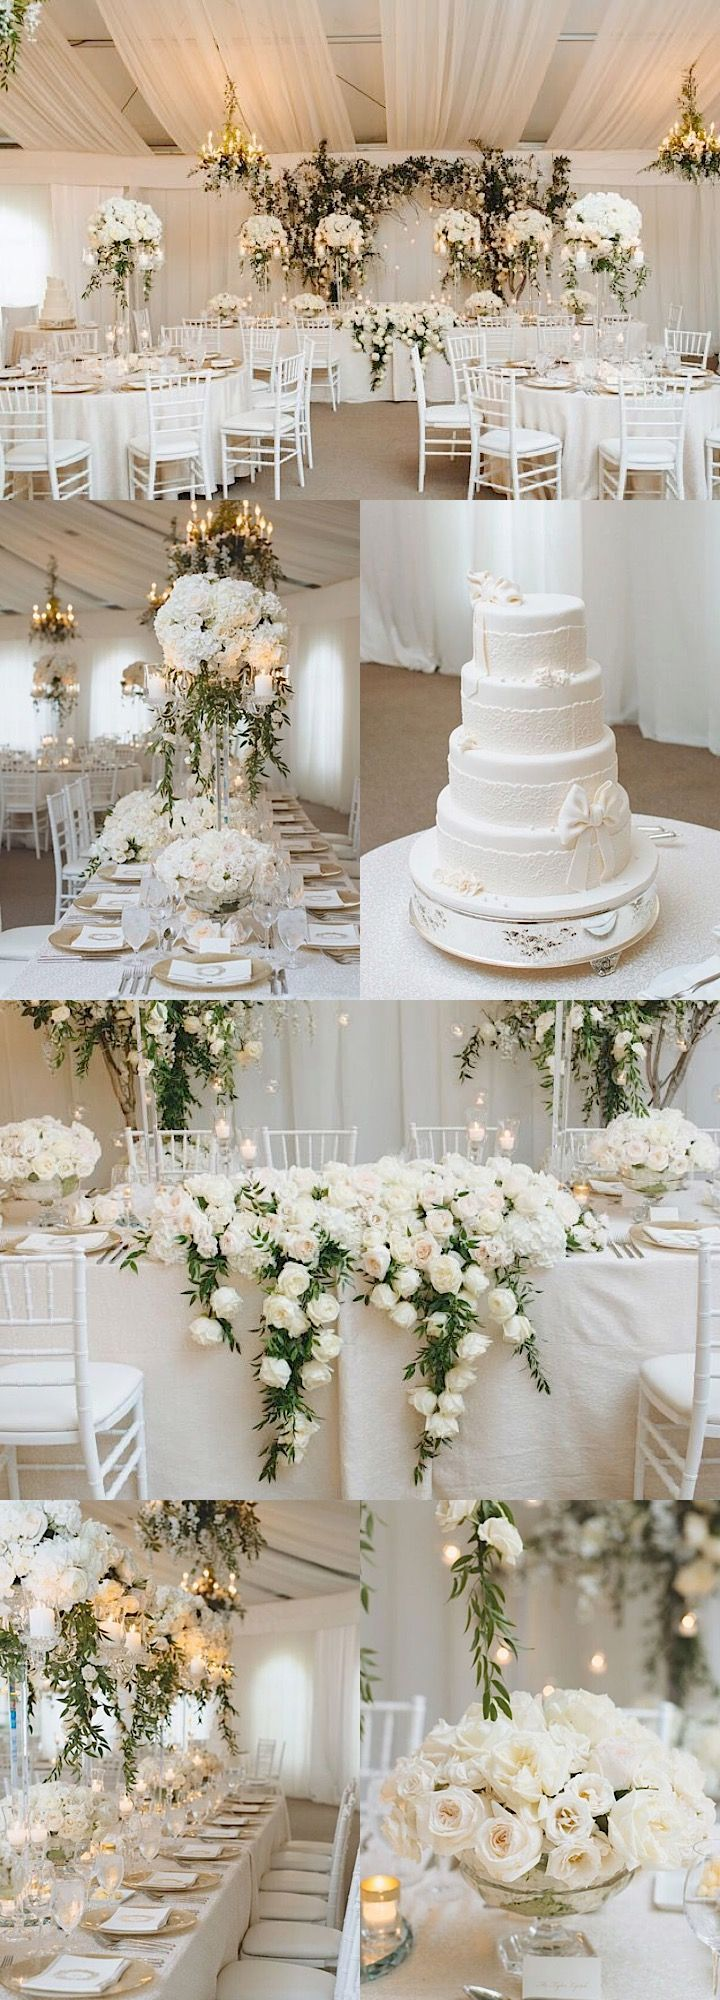 Best 25 elegant wedding ideas on pinterest elegant wedding elegant white wedding reception idea photo mango studios junglespirit Gallery